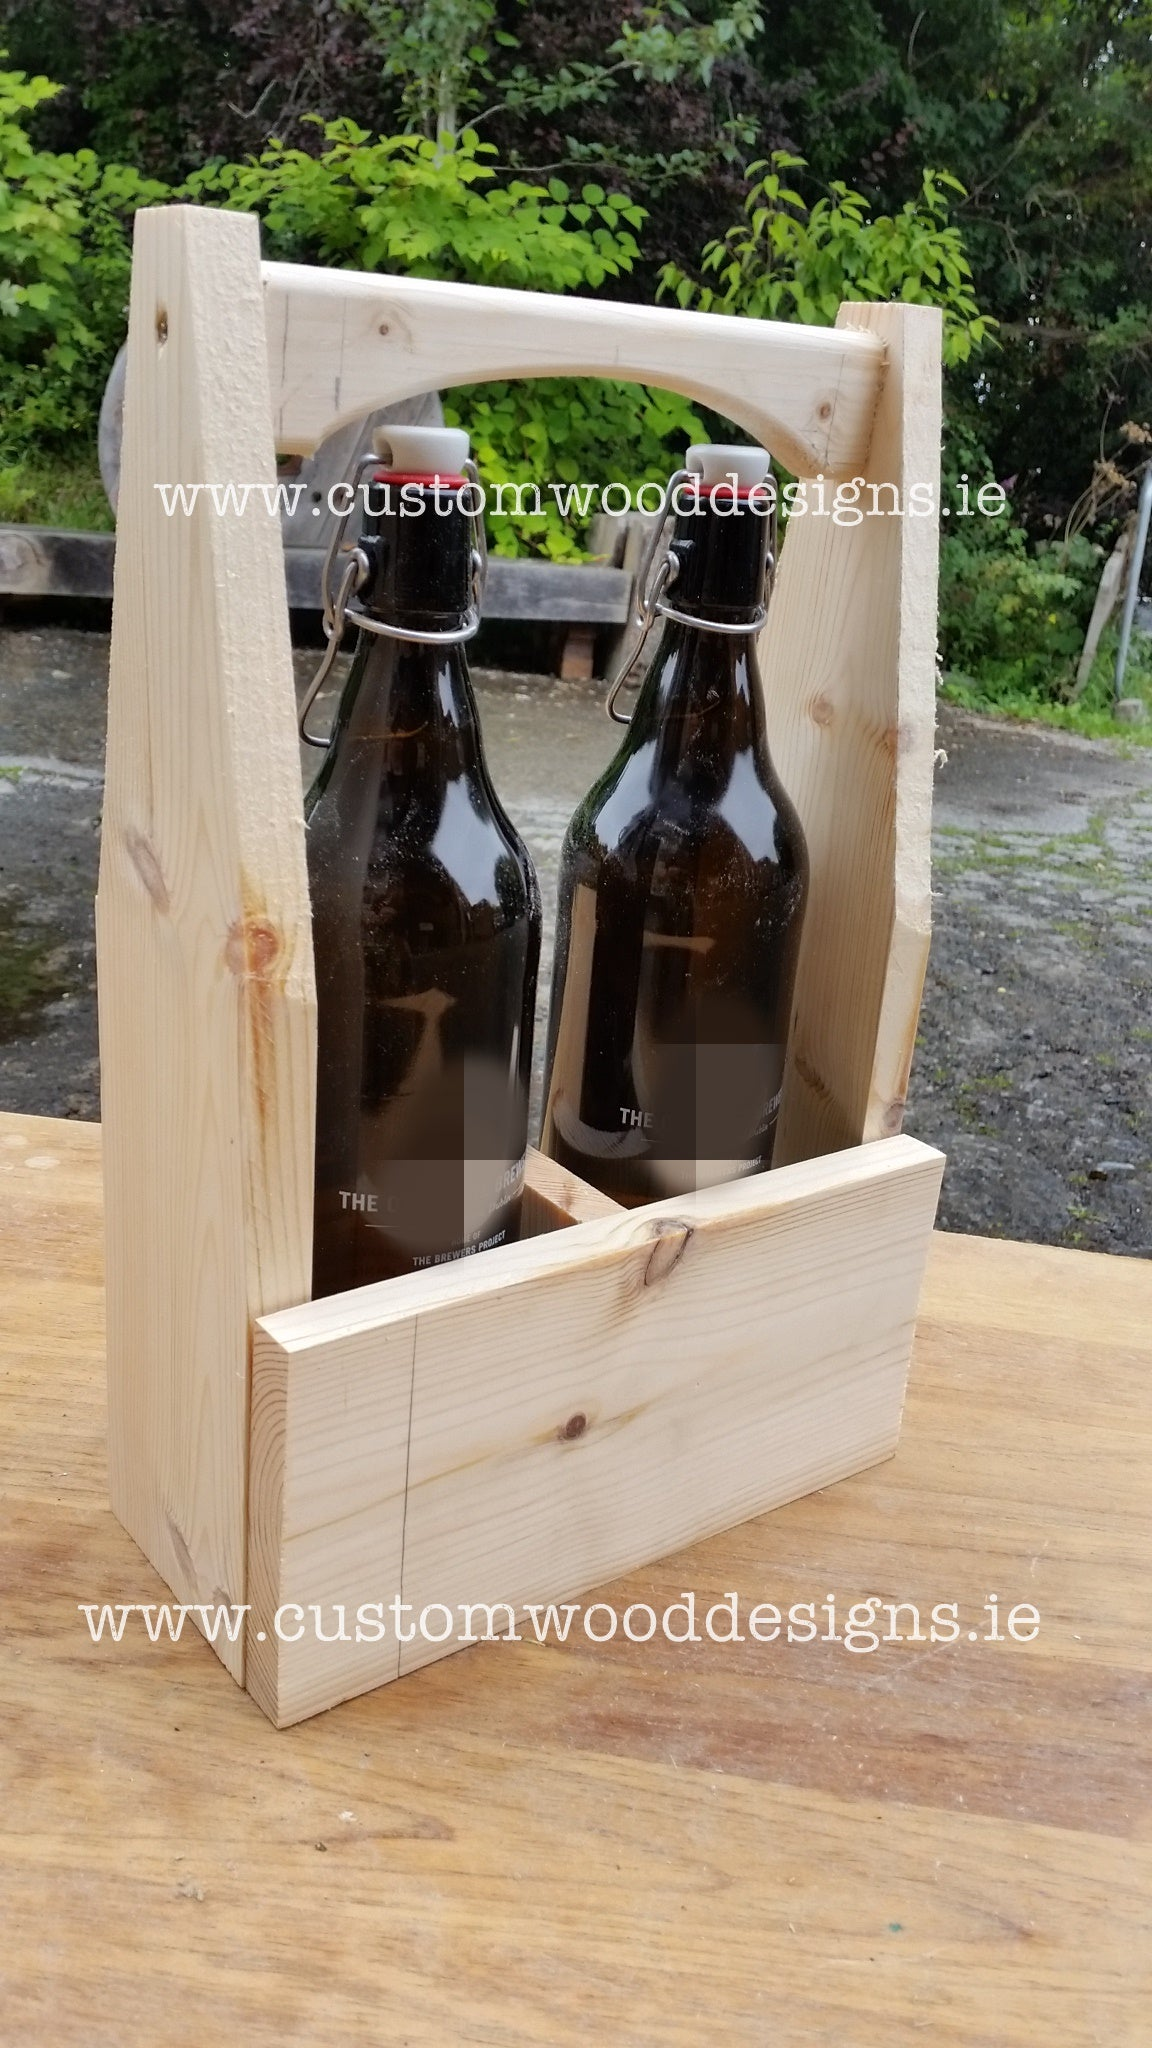 Caddy woodworking made to order bottle holders dublin laser engraved honest juices bottle holder round holer laser engraved custom wood designs ire;and irish made gary byrne custom wood wood branding sp (3)